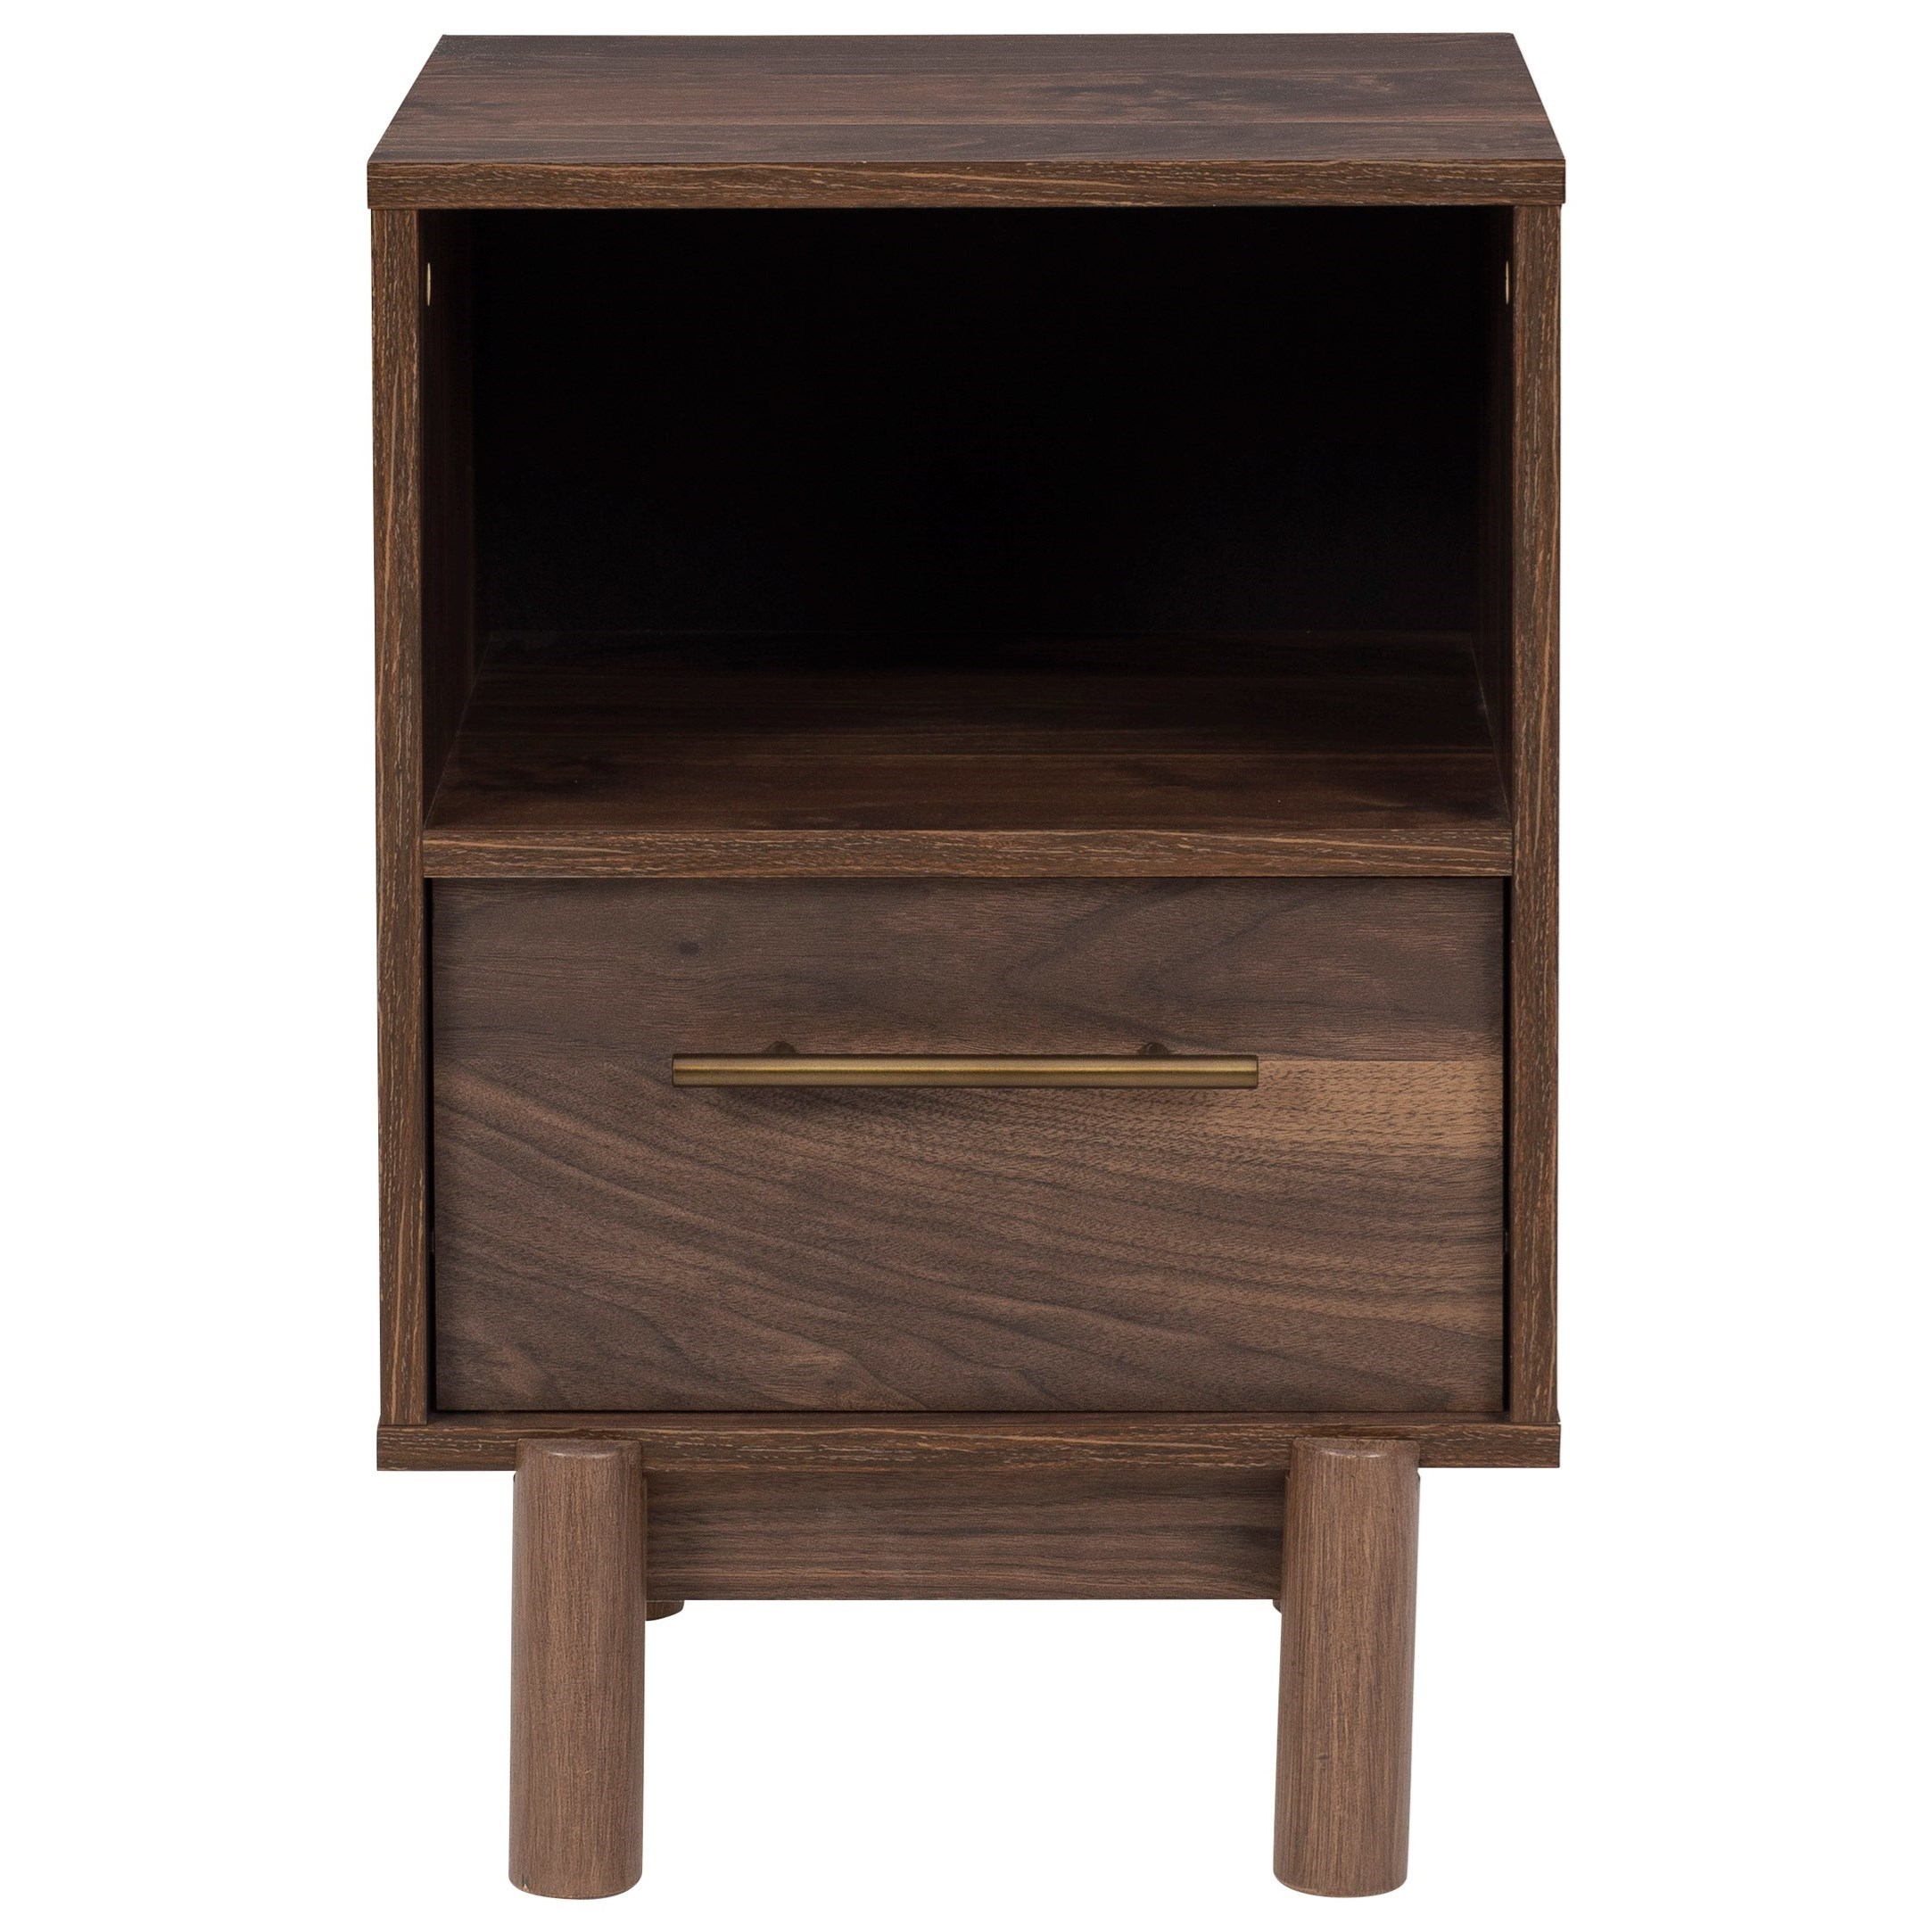 Calverson 1-Drawer Nightstand by Signature Design by Ashley at Northeast Factory Direct